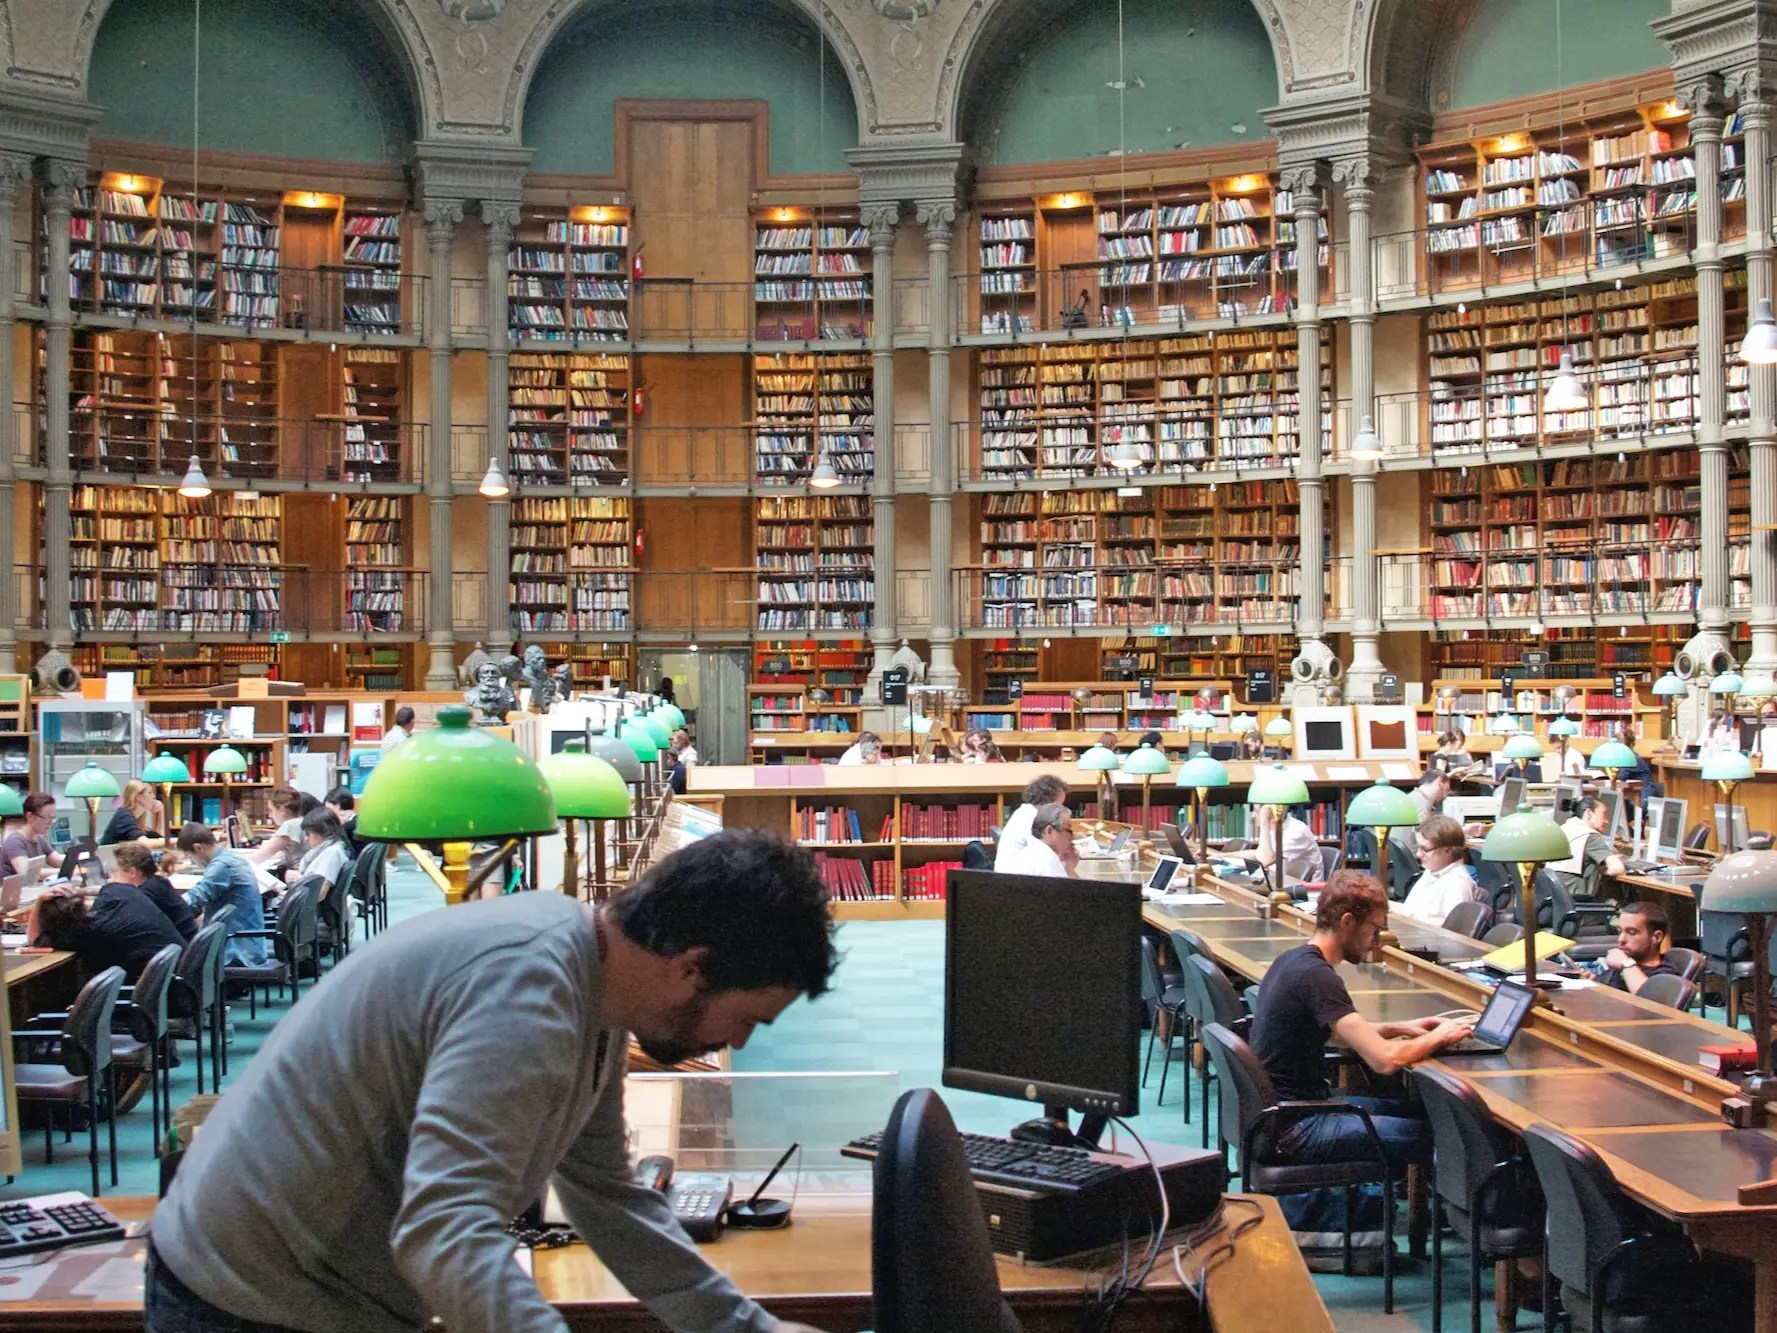 Once having held the record for the largest collection of books in the world, the Bibliotheque Nationale de France has since expanded, but the original buildings from 1868 are still the most beautiful. The Salle Ovale (oval room) in the Richelieu Building is a must see.